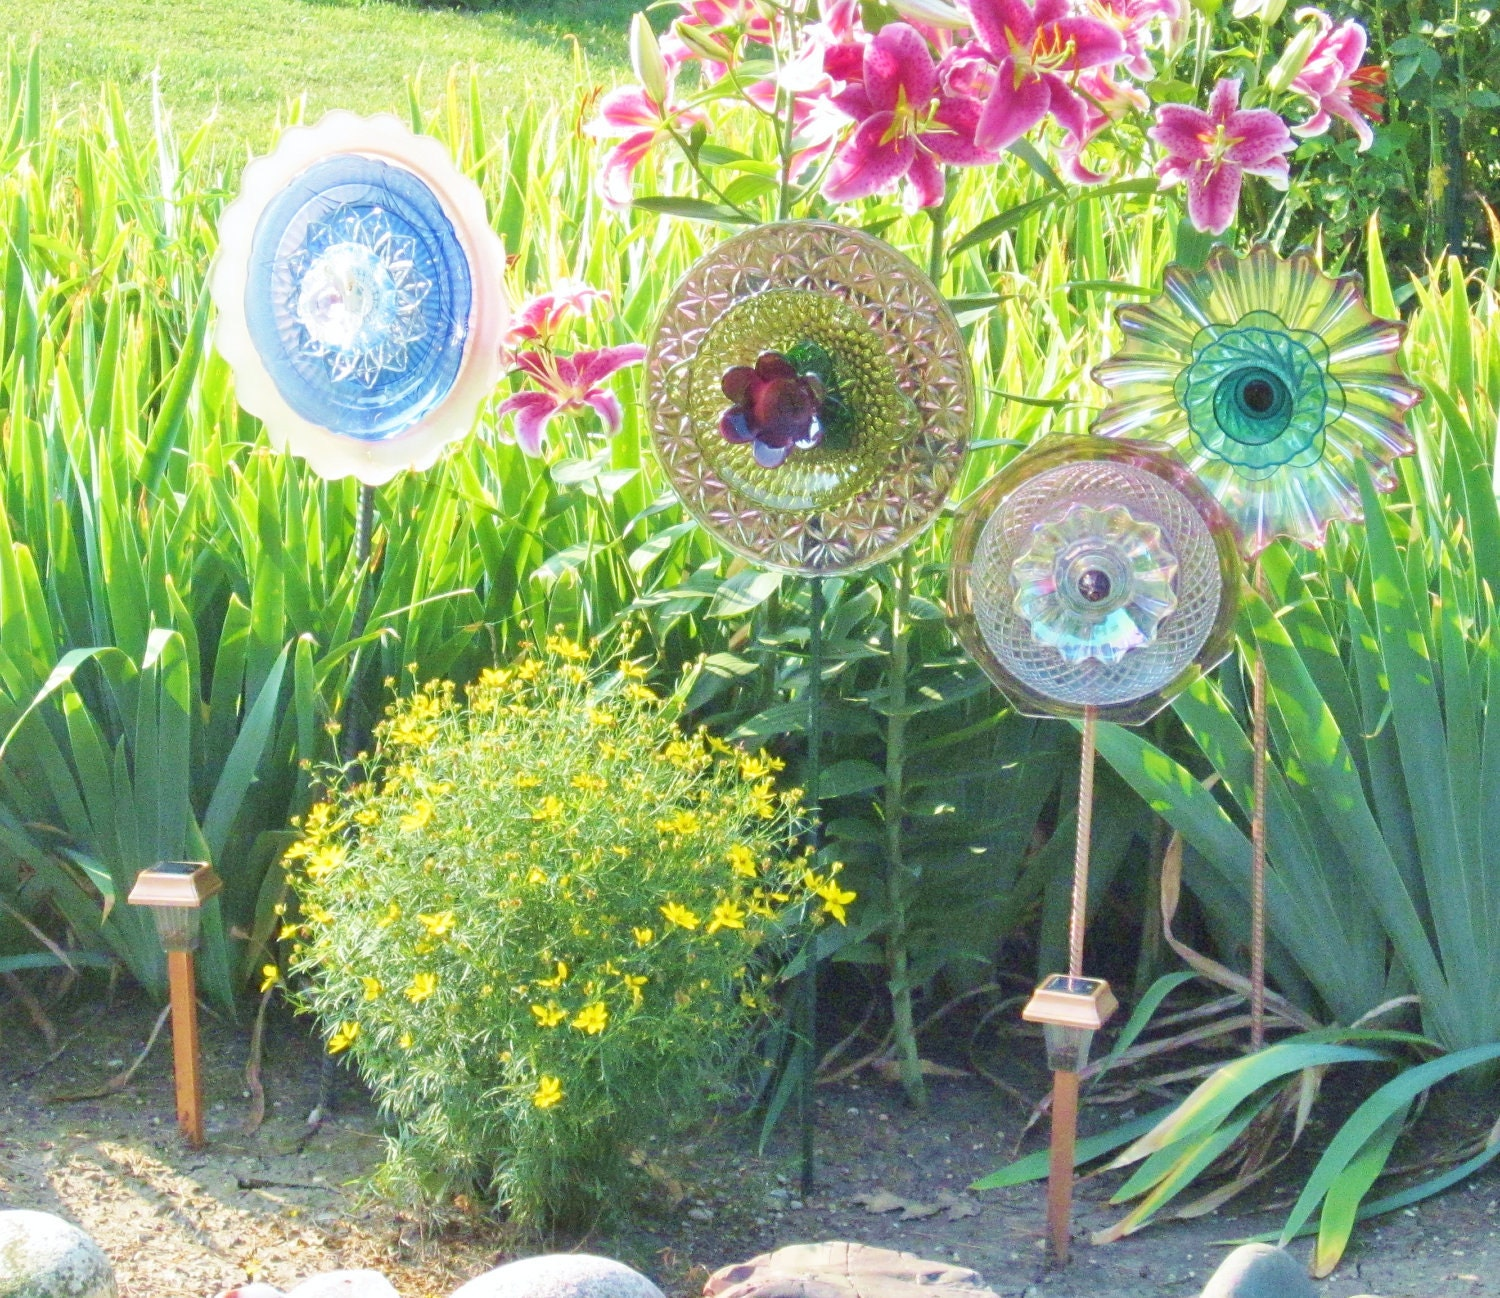 Lawn and garden decorative accessories garden decoration for Flower garden ornaments